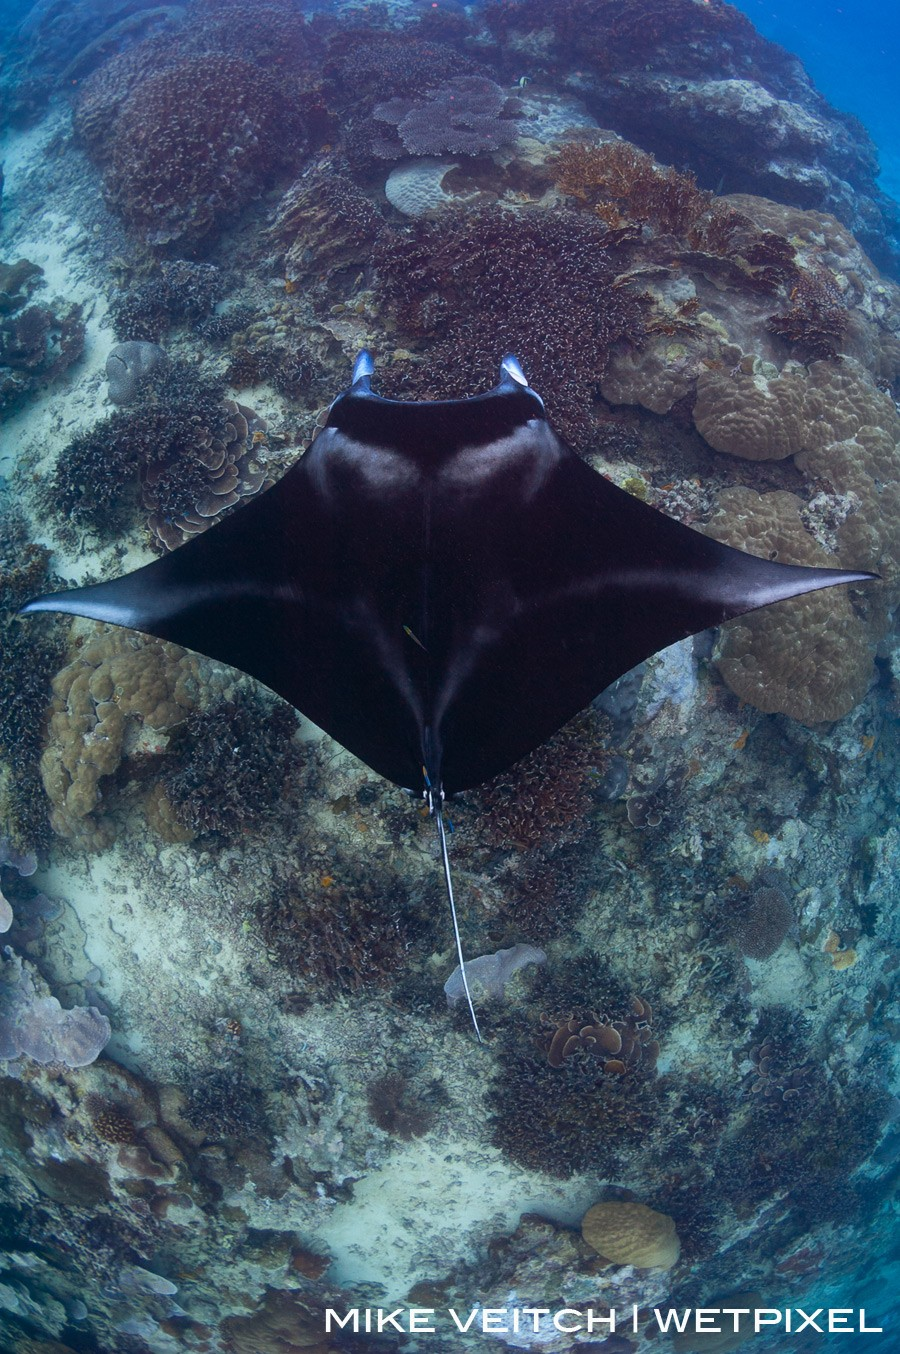 A reef manta ray, *Manta alfredi*, hovers above a cleaning station.  A keen eye can spot the cleaner fish around the tail.  Goofnuw Channel, Yap, Micronesia